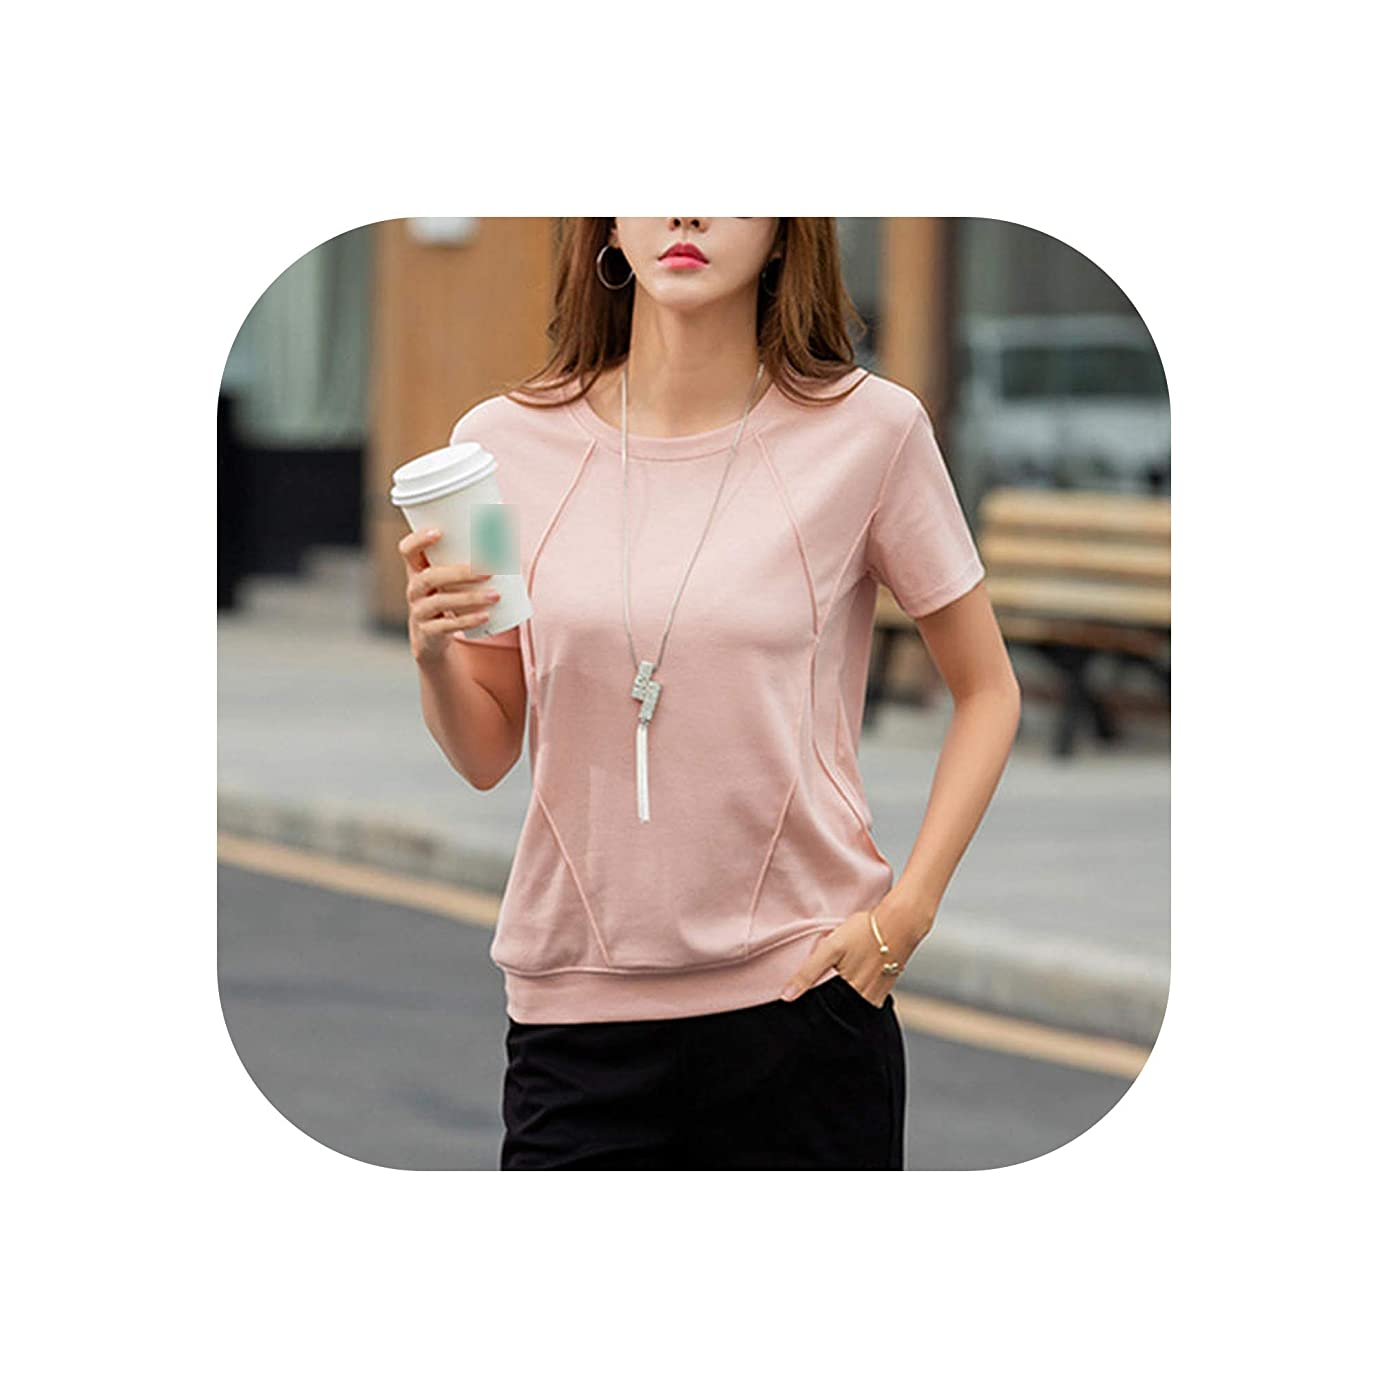 T Shirts Female Soft Cotton Women Tops Loose fit Shirt Summer Short Sleeve Undershirt Ladies